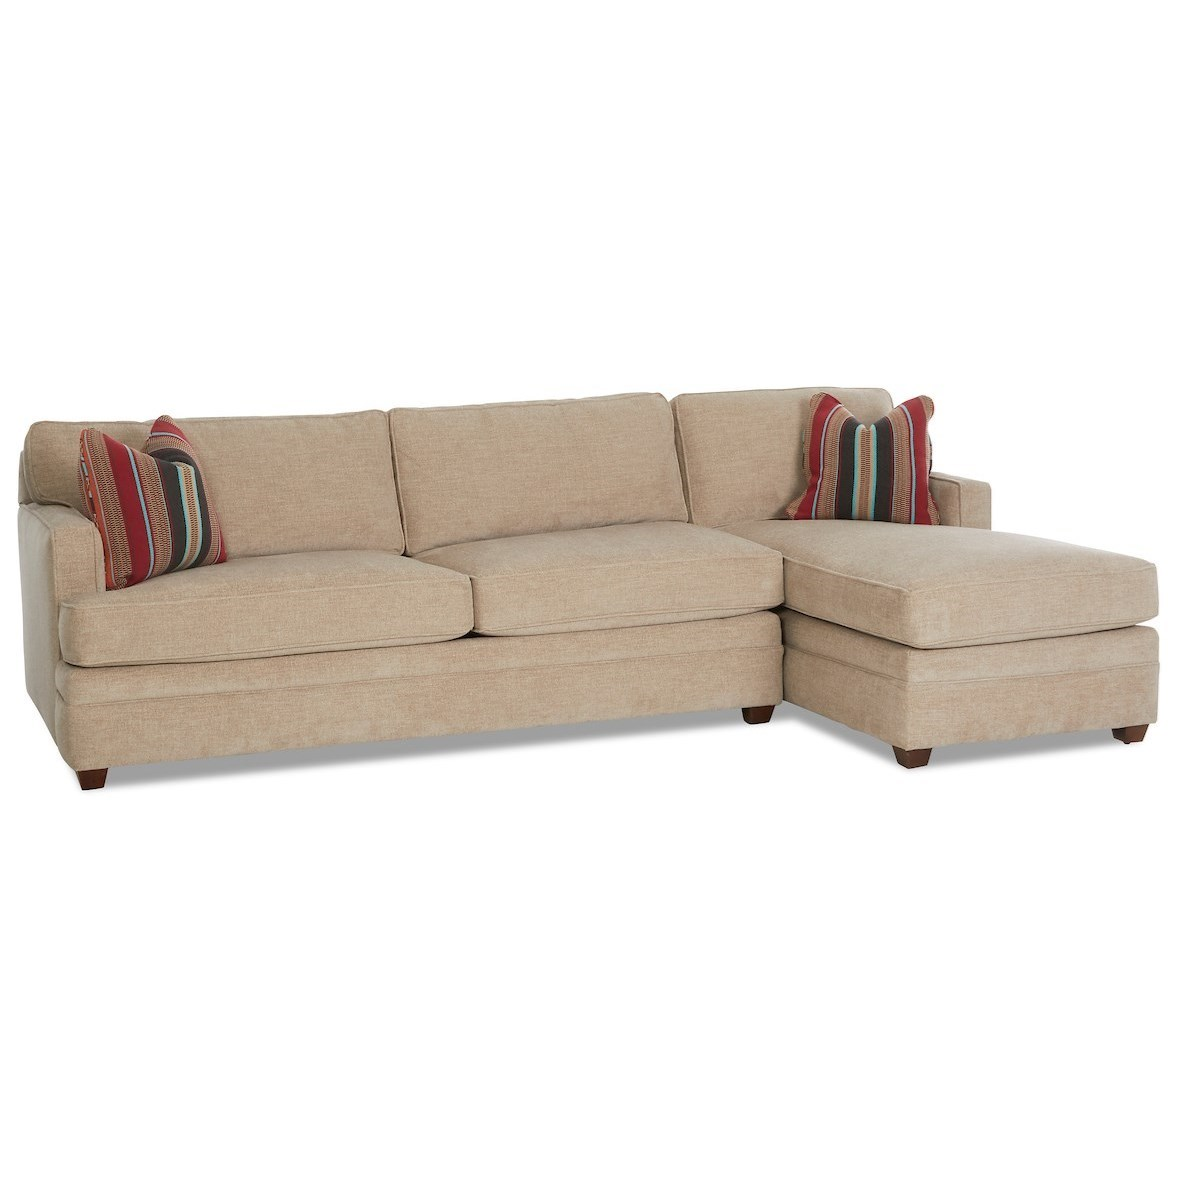 Living Your Way 2-Piece Sectional w/ LAF Dreamquest Sleeper by Klaussner at Northeast Factory Direct